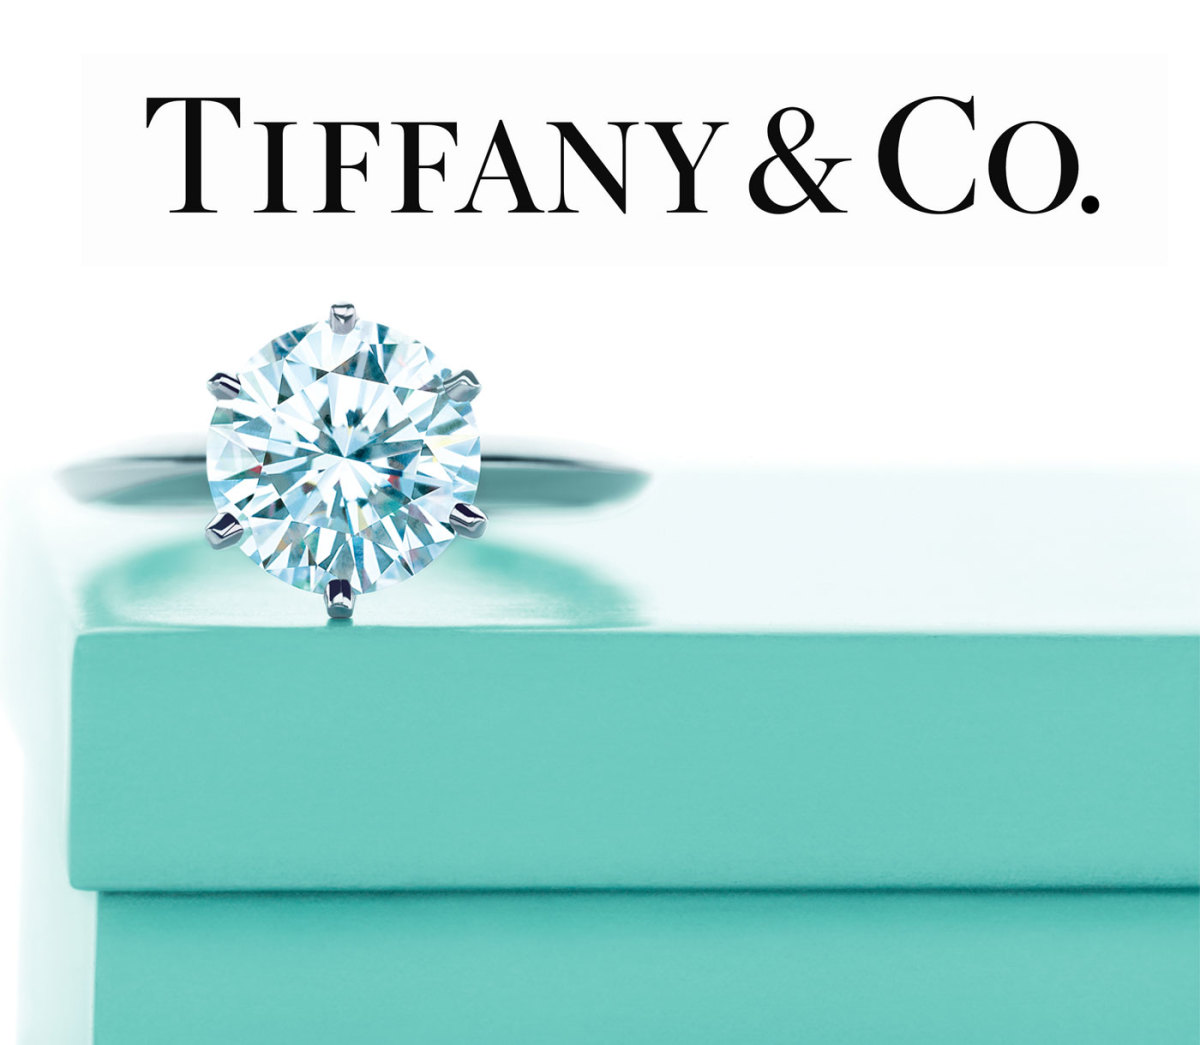 Facts You May Not Know About Tiffany & Co.